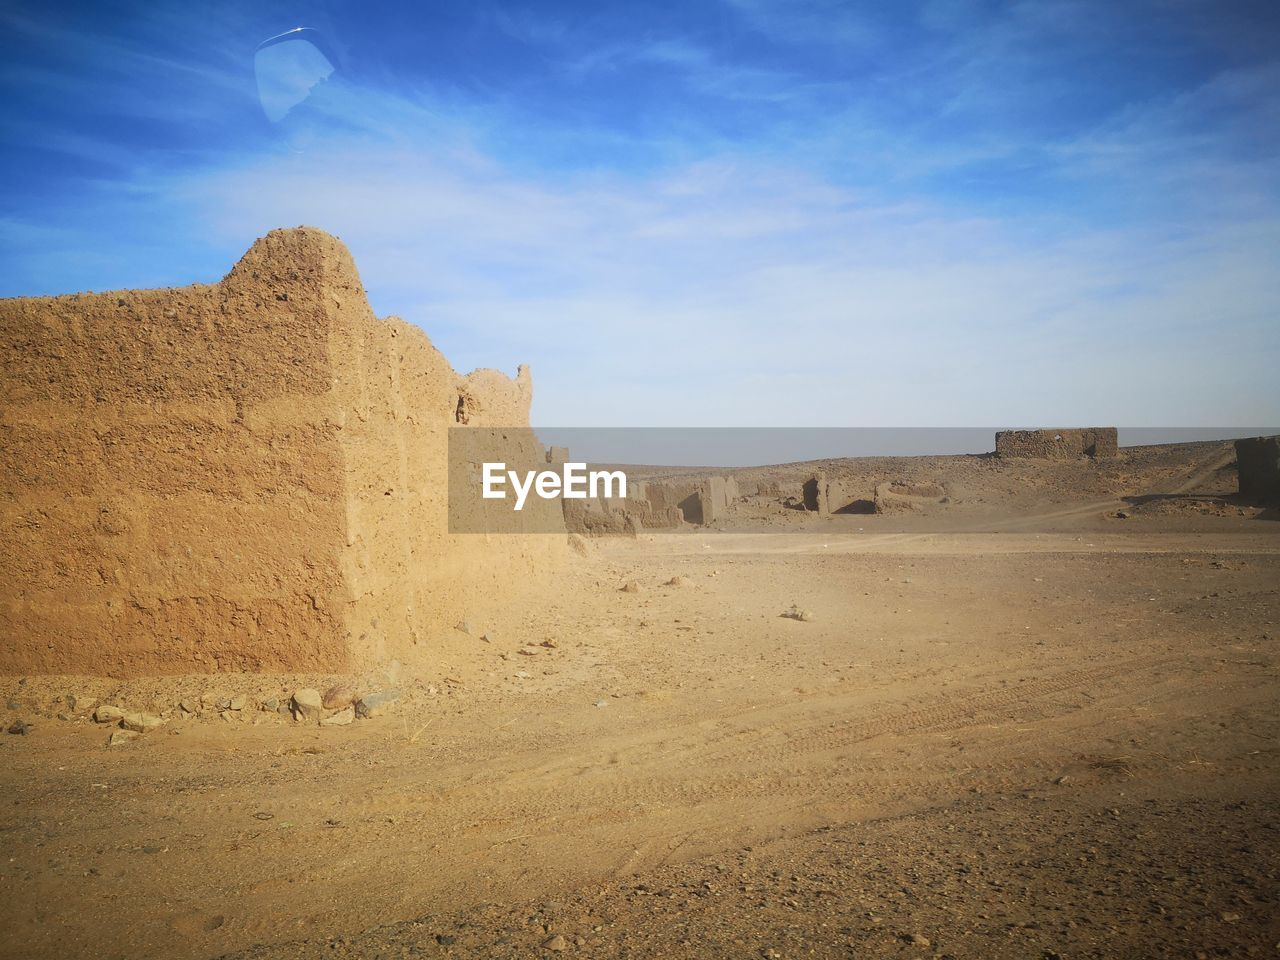 sky, history, the past, scenics - nature, nature, beauty in nature, ancient, land, tranquil scene, environment, tranquility, travel destinations, landscape, day, no people, architecture, non-urban scene, fort, travel, built structure, outdoors, ancient civilization, climate, arid climate, ruined